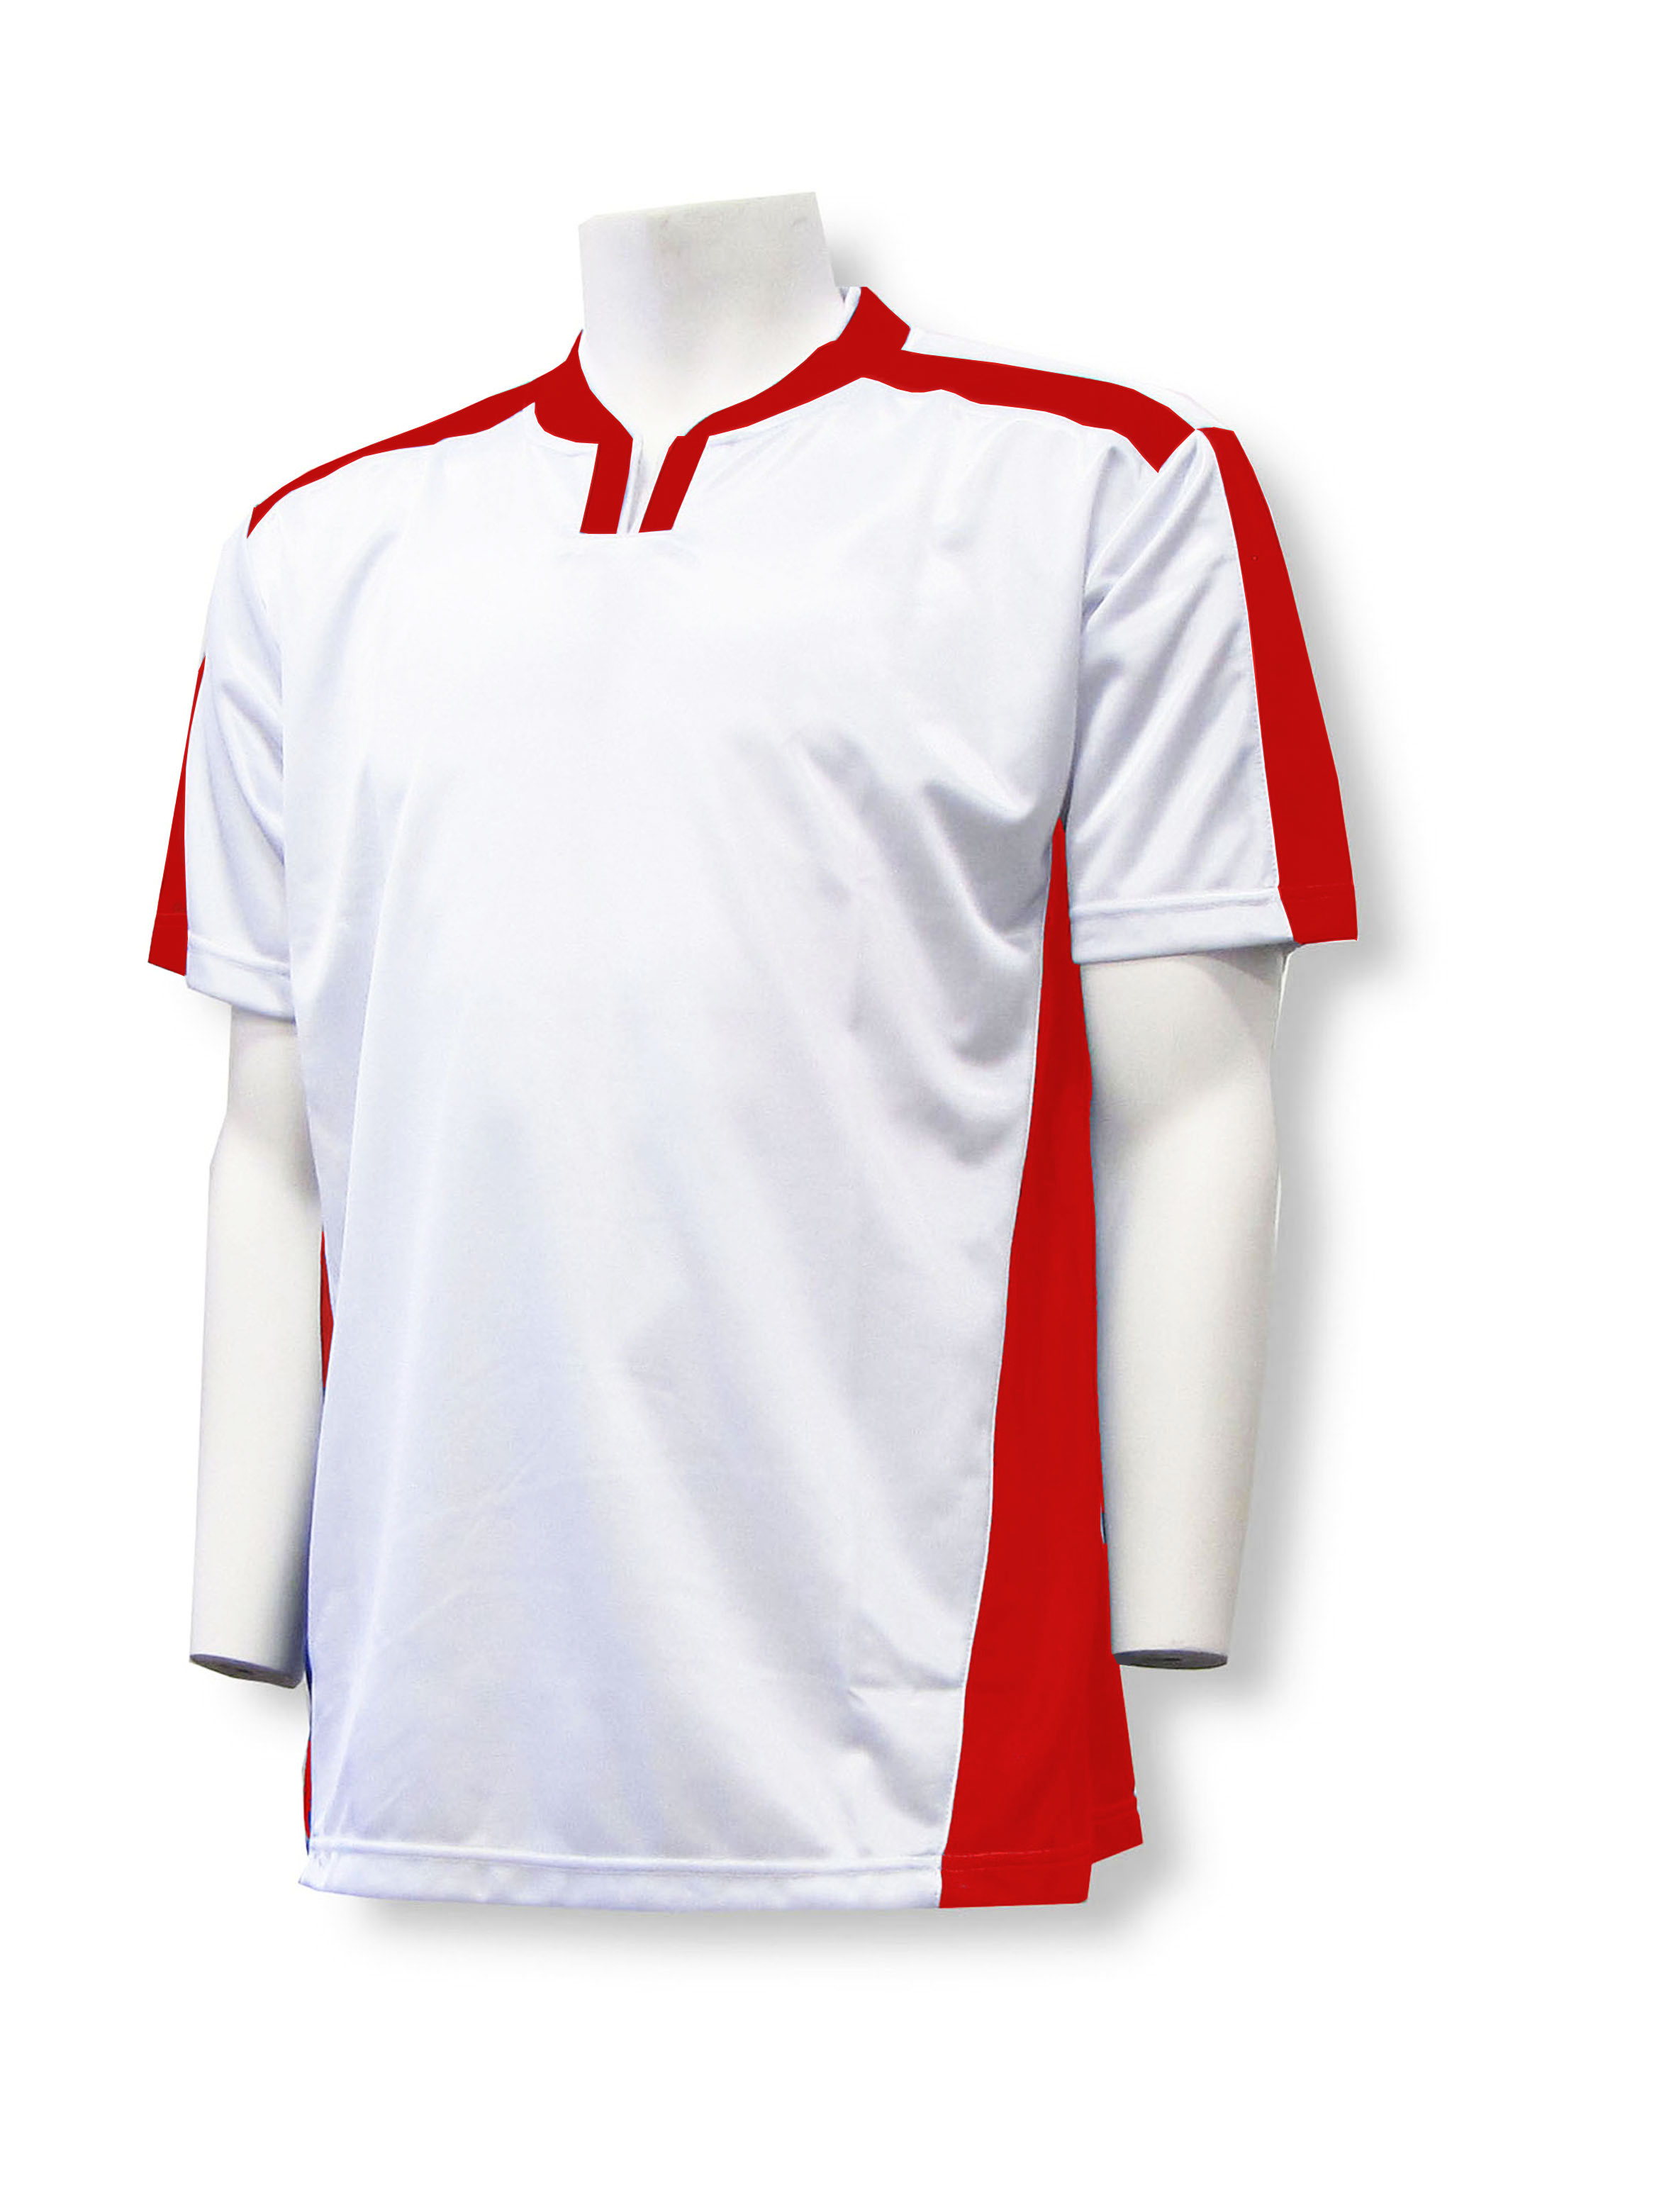 Winchester soccer jersey in white/red by Code Four Athletics